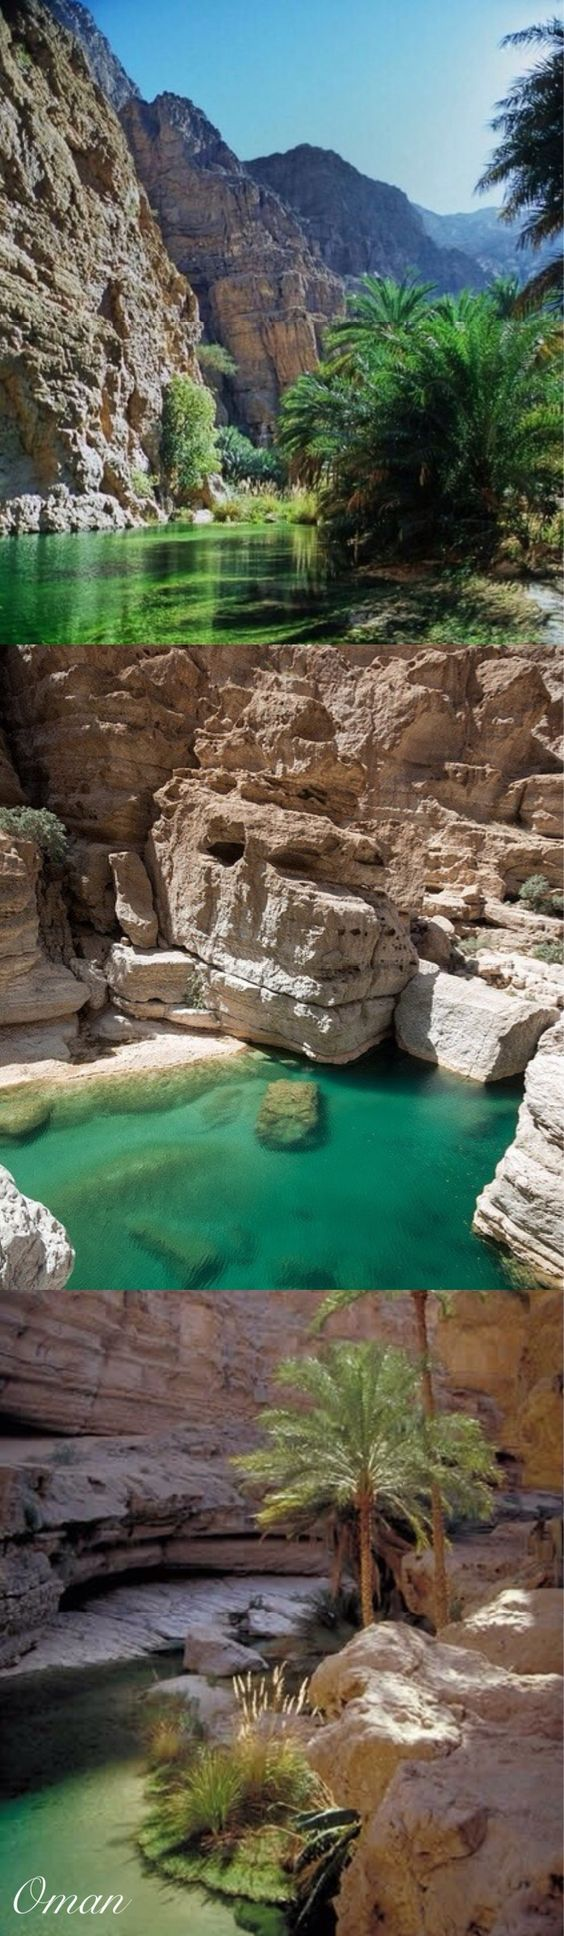 The oldest civilisation in the Arabian Peninsula , #Oman is home to jaw-dropping landscapes, a rich culture and over 600 miles of coastline, not to mention warm, sunny climates.